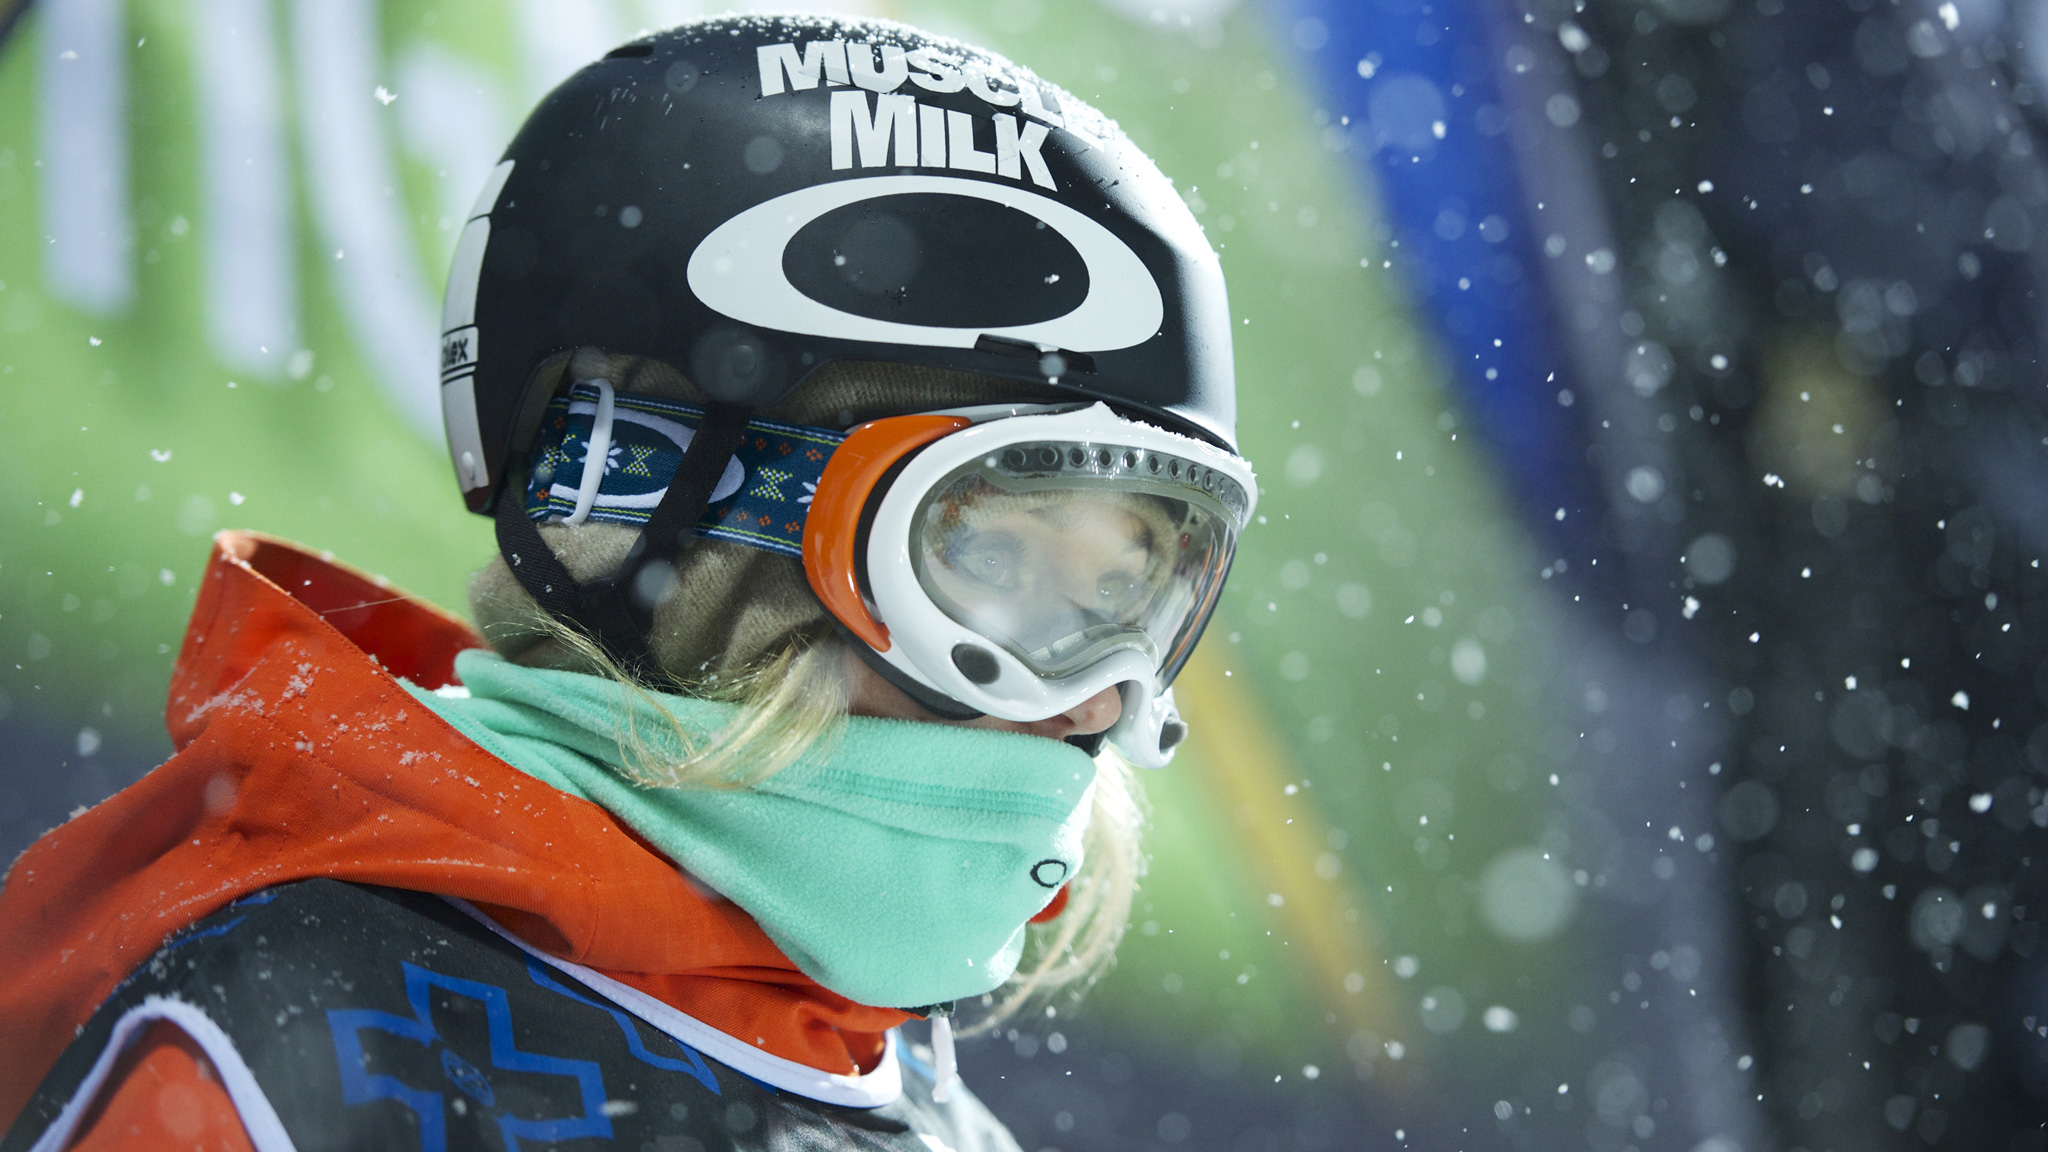 When Gretchen Bleiler drops into the X Aspen SuperPipe on Saturday night, it will be for the last time.